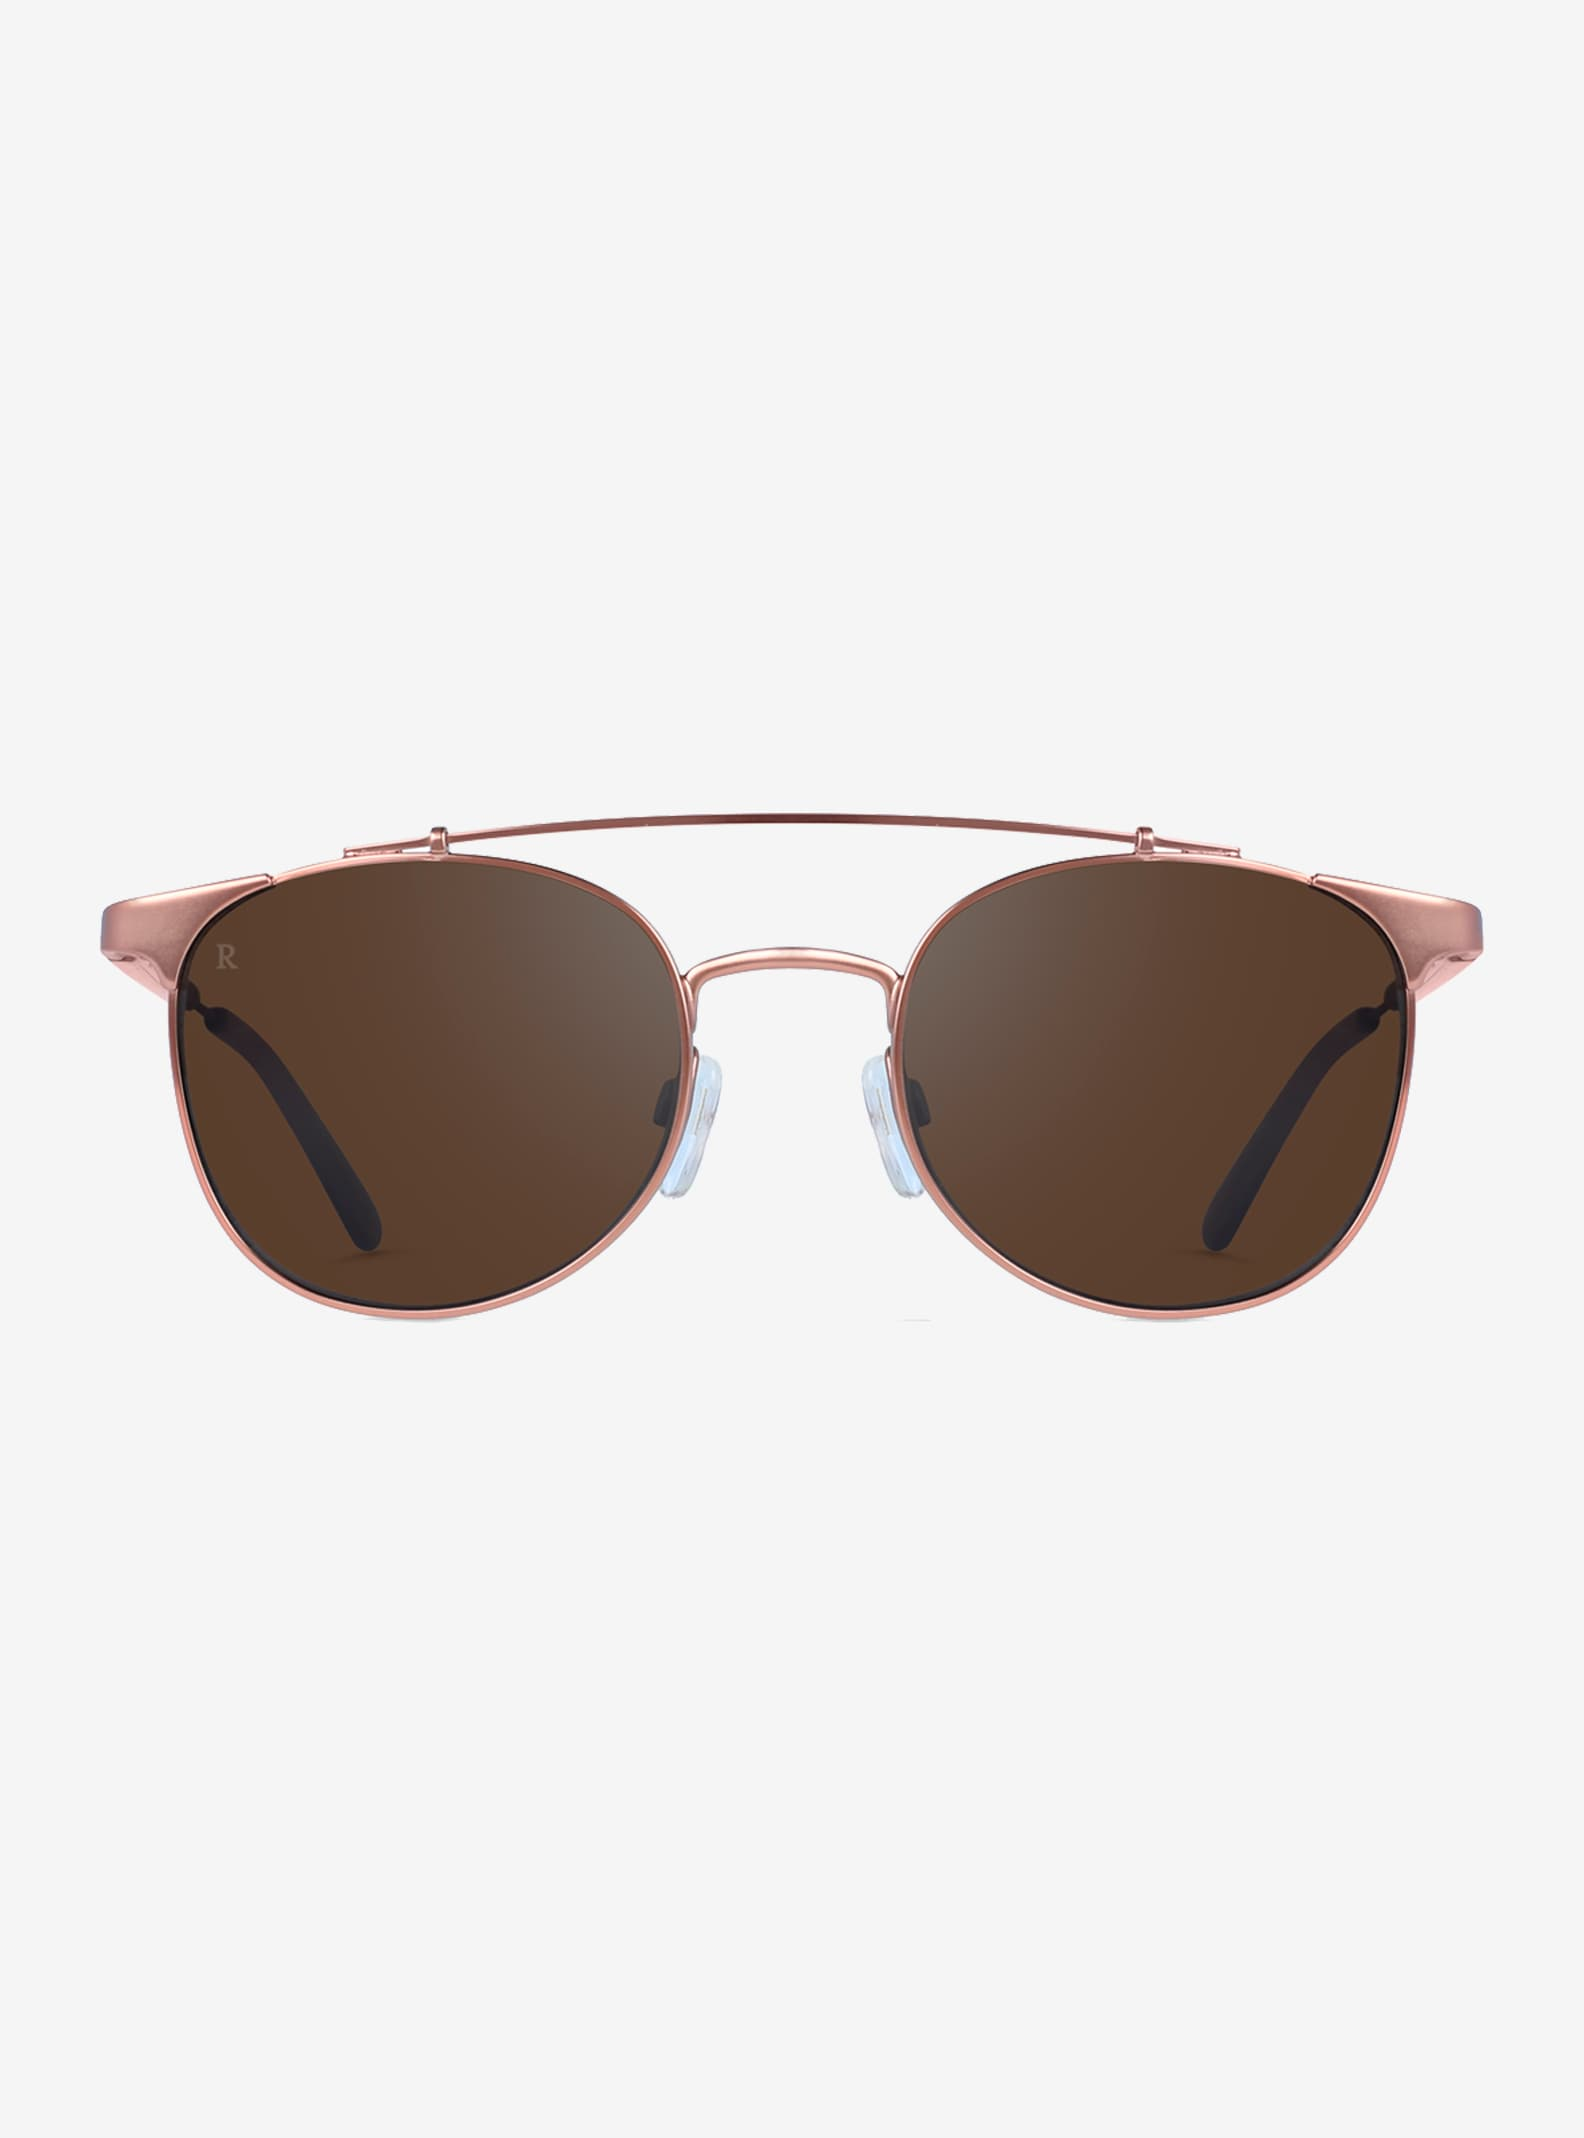 RAEN Raleigh Sunglasses shown in Rose Gold (Silver Tri-flection Mirror)